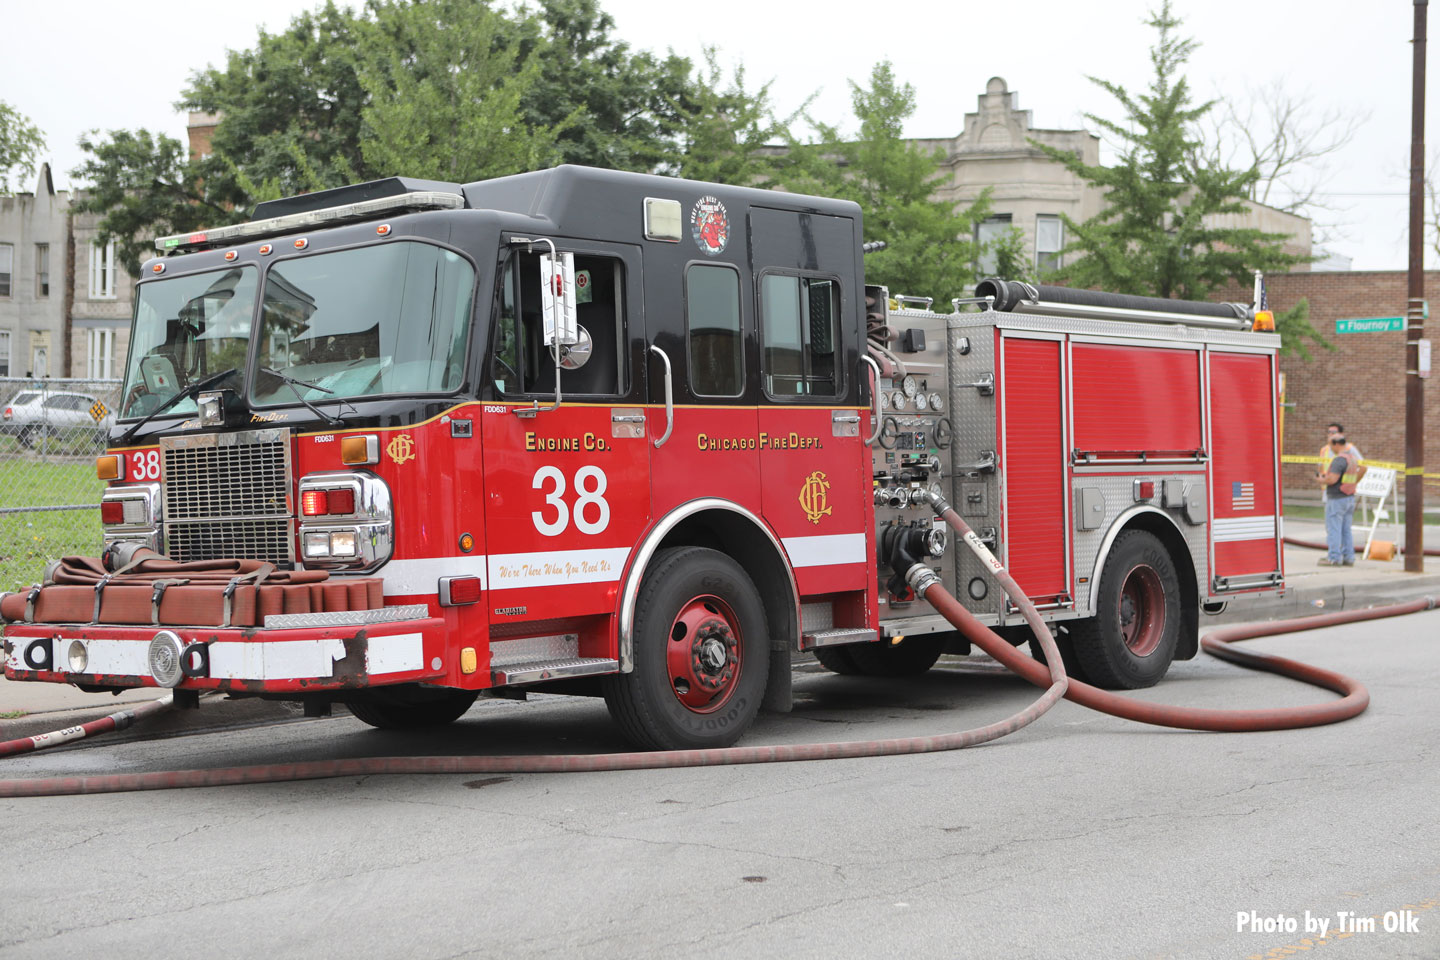 A Chicago fire engine at the scene.